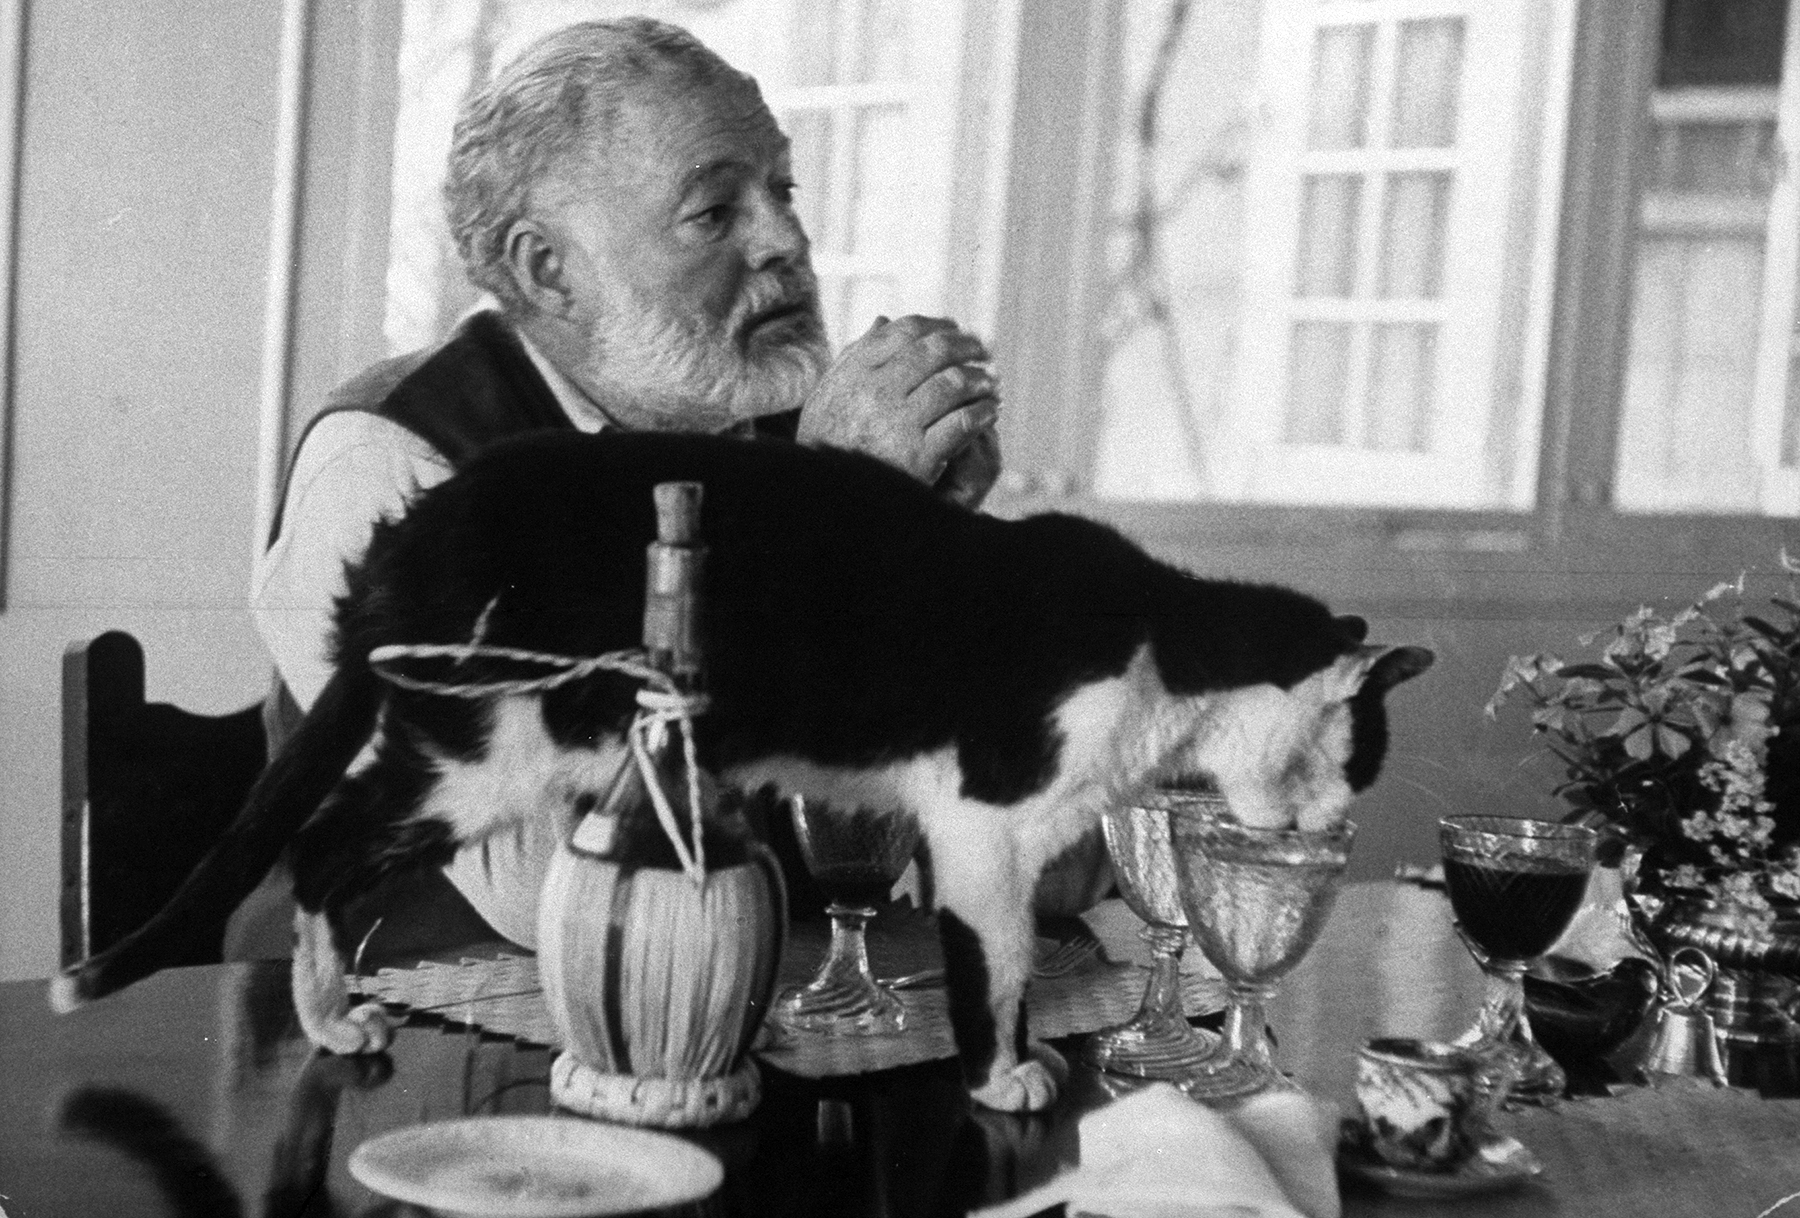 Ernest Hemingway sitting at table with his cat circa 1960.